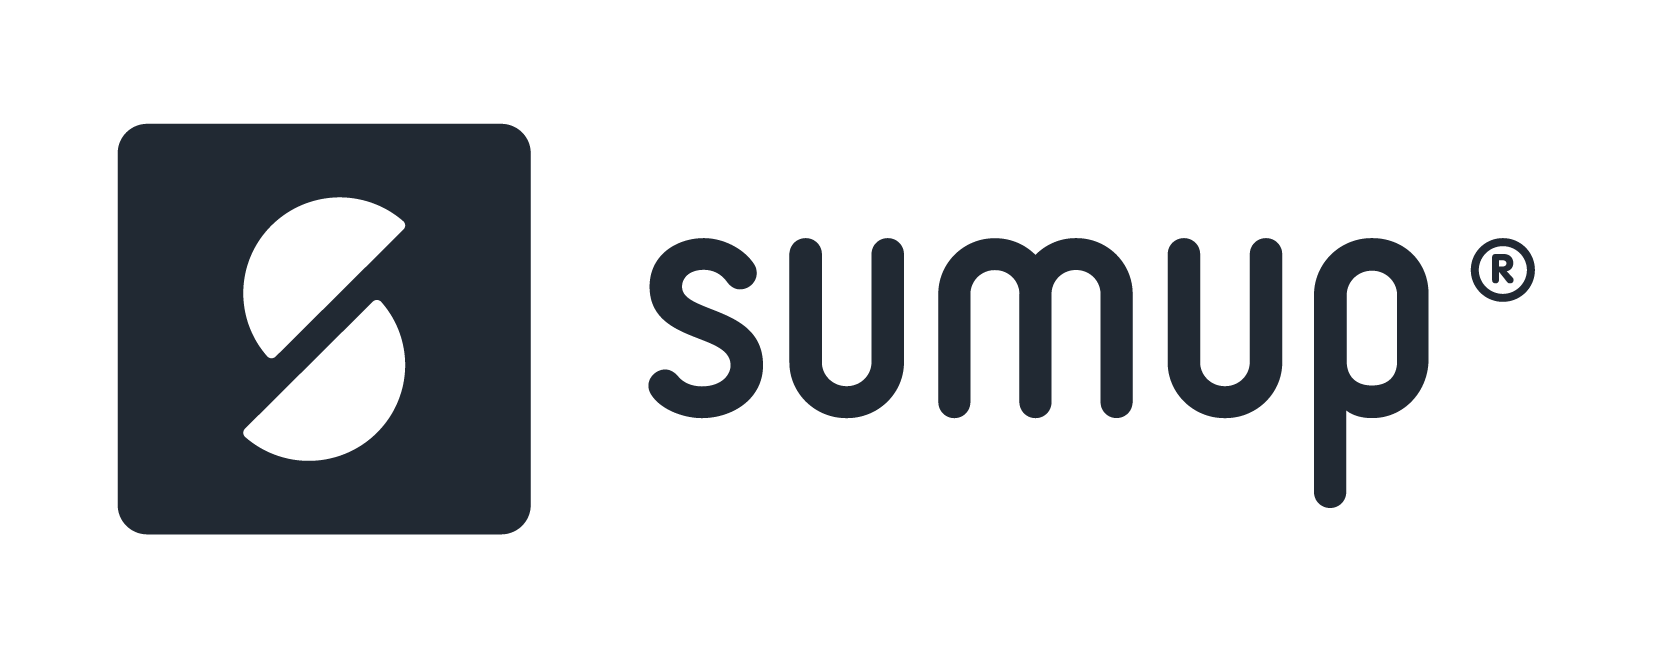 SumUp launches free Mobile Payments and Invoicing across Europe to help consumers pay safely and remotely via smartphone